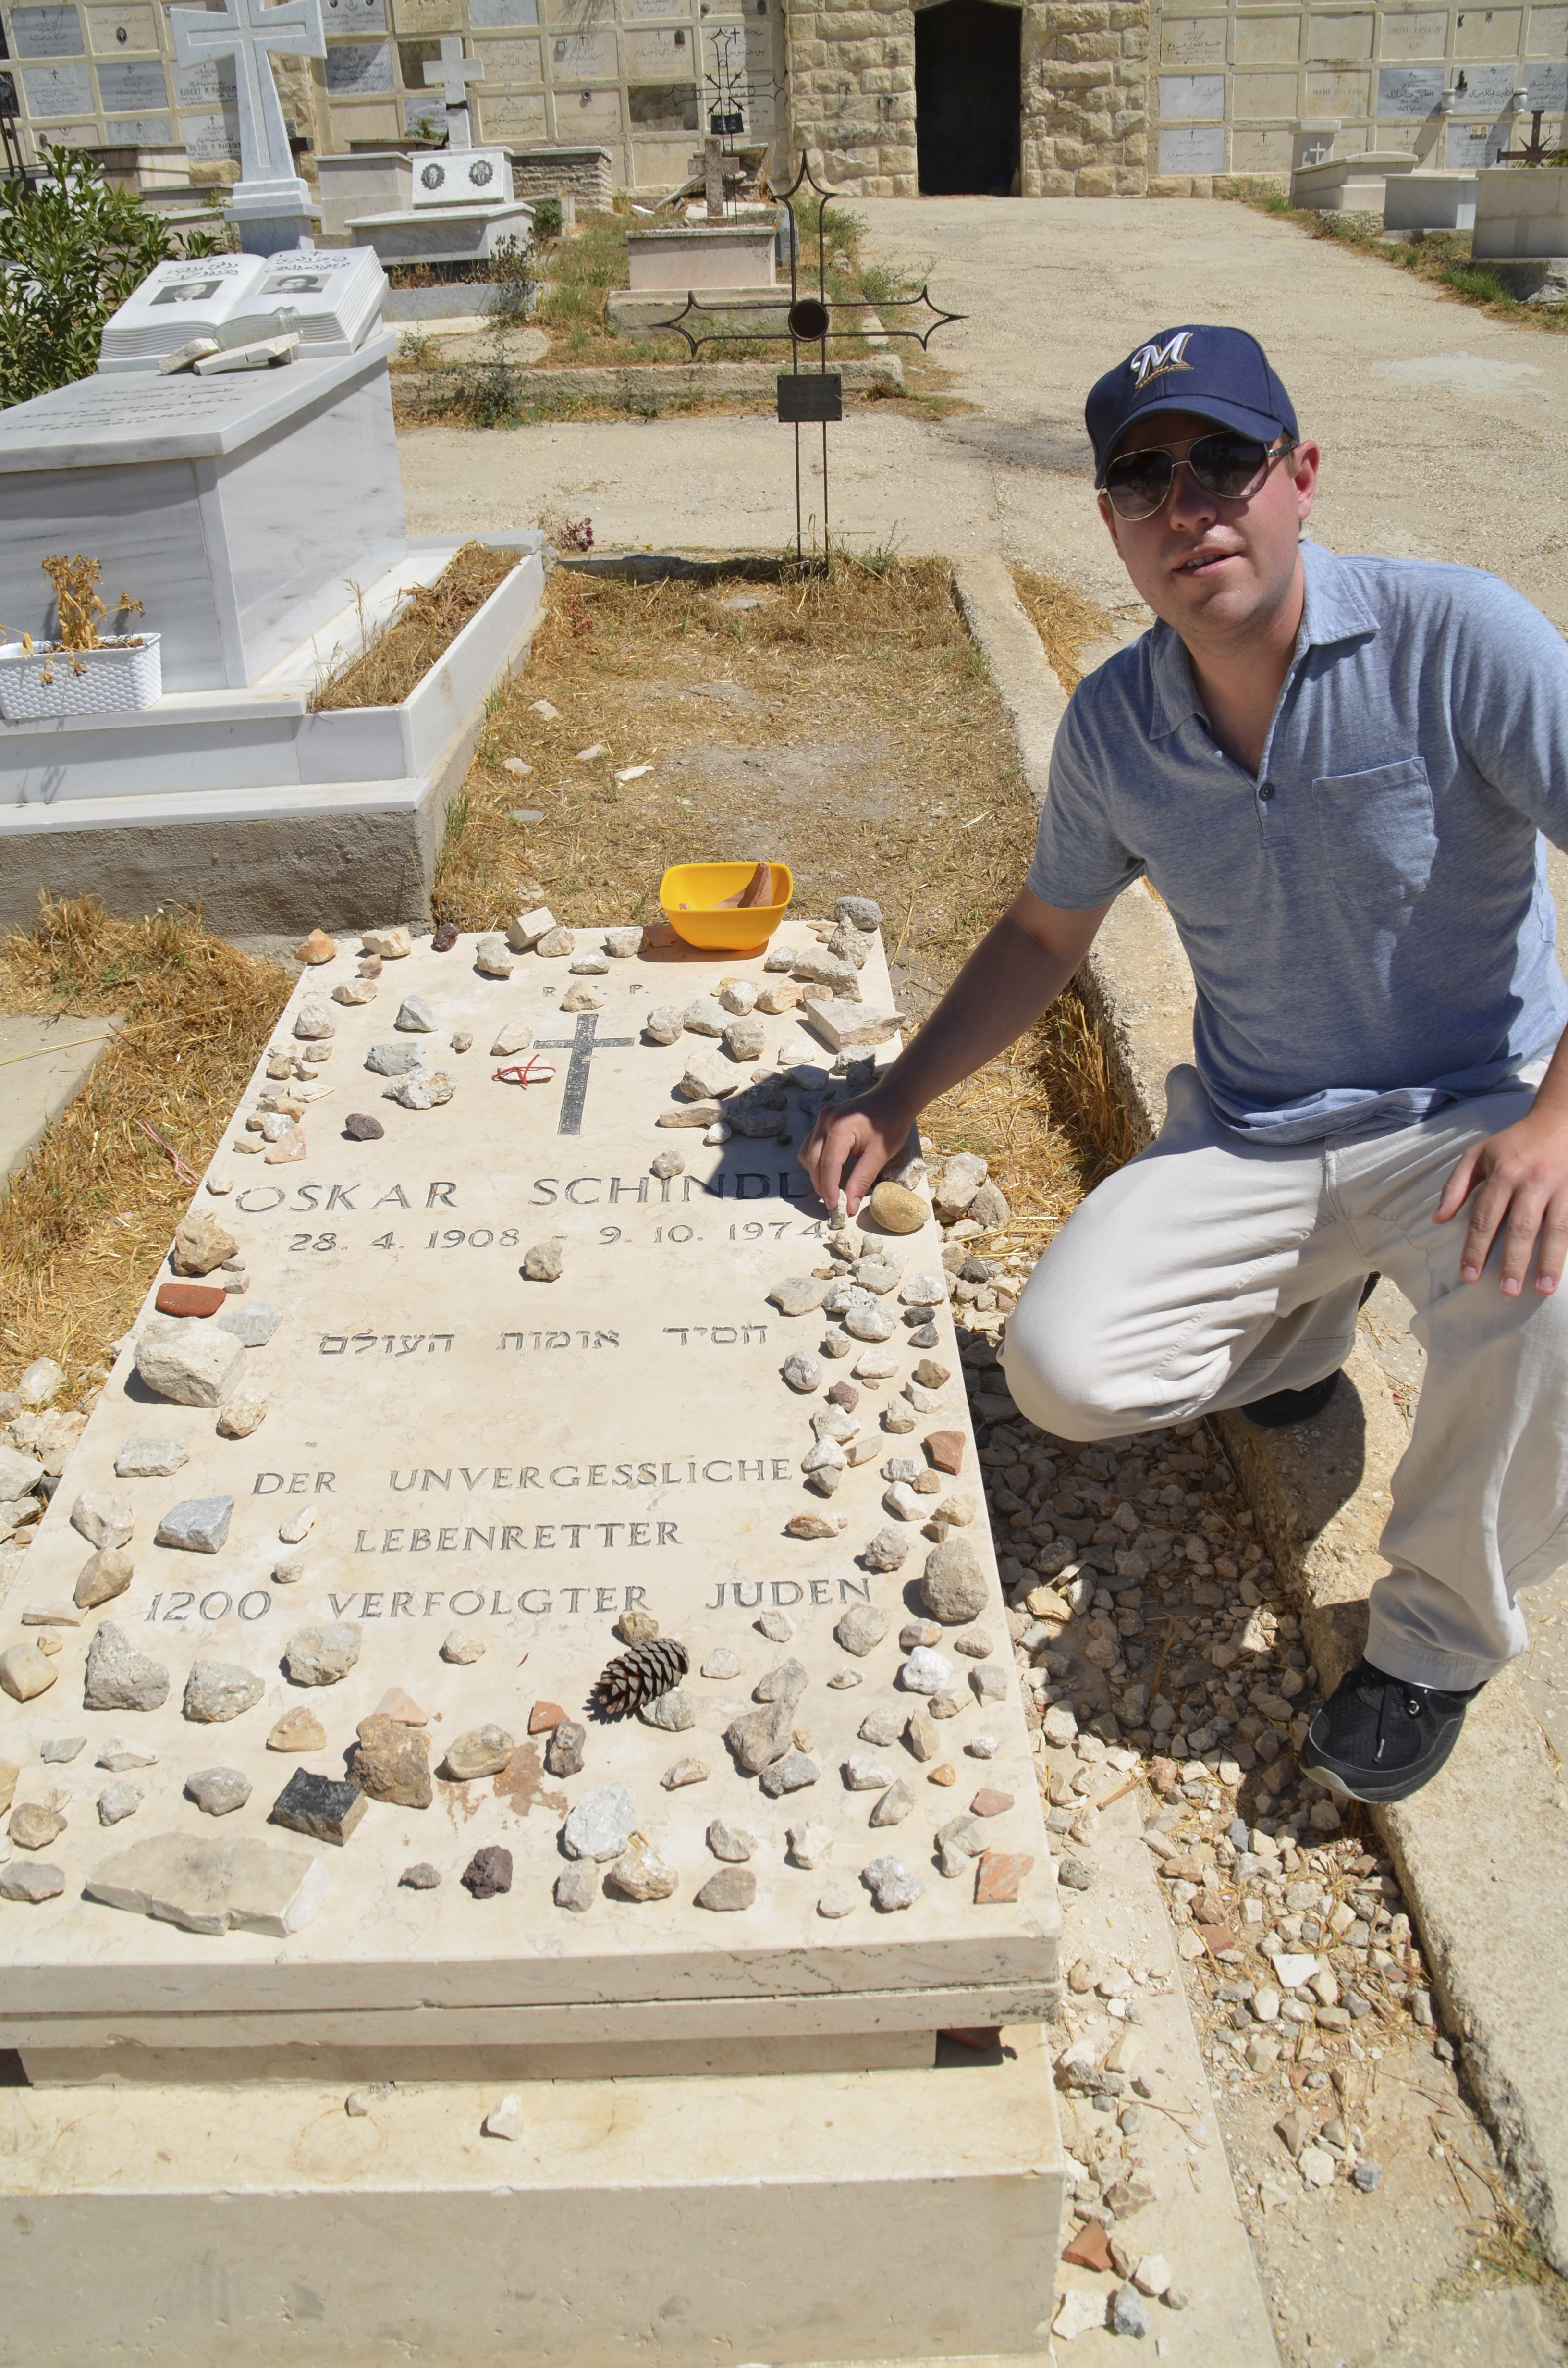 a surreal day trip to jeru m traveler for life placing a stone on the grave of oskar schindler at mount zion